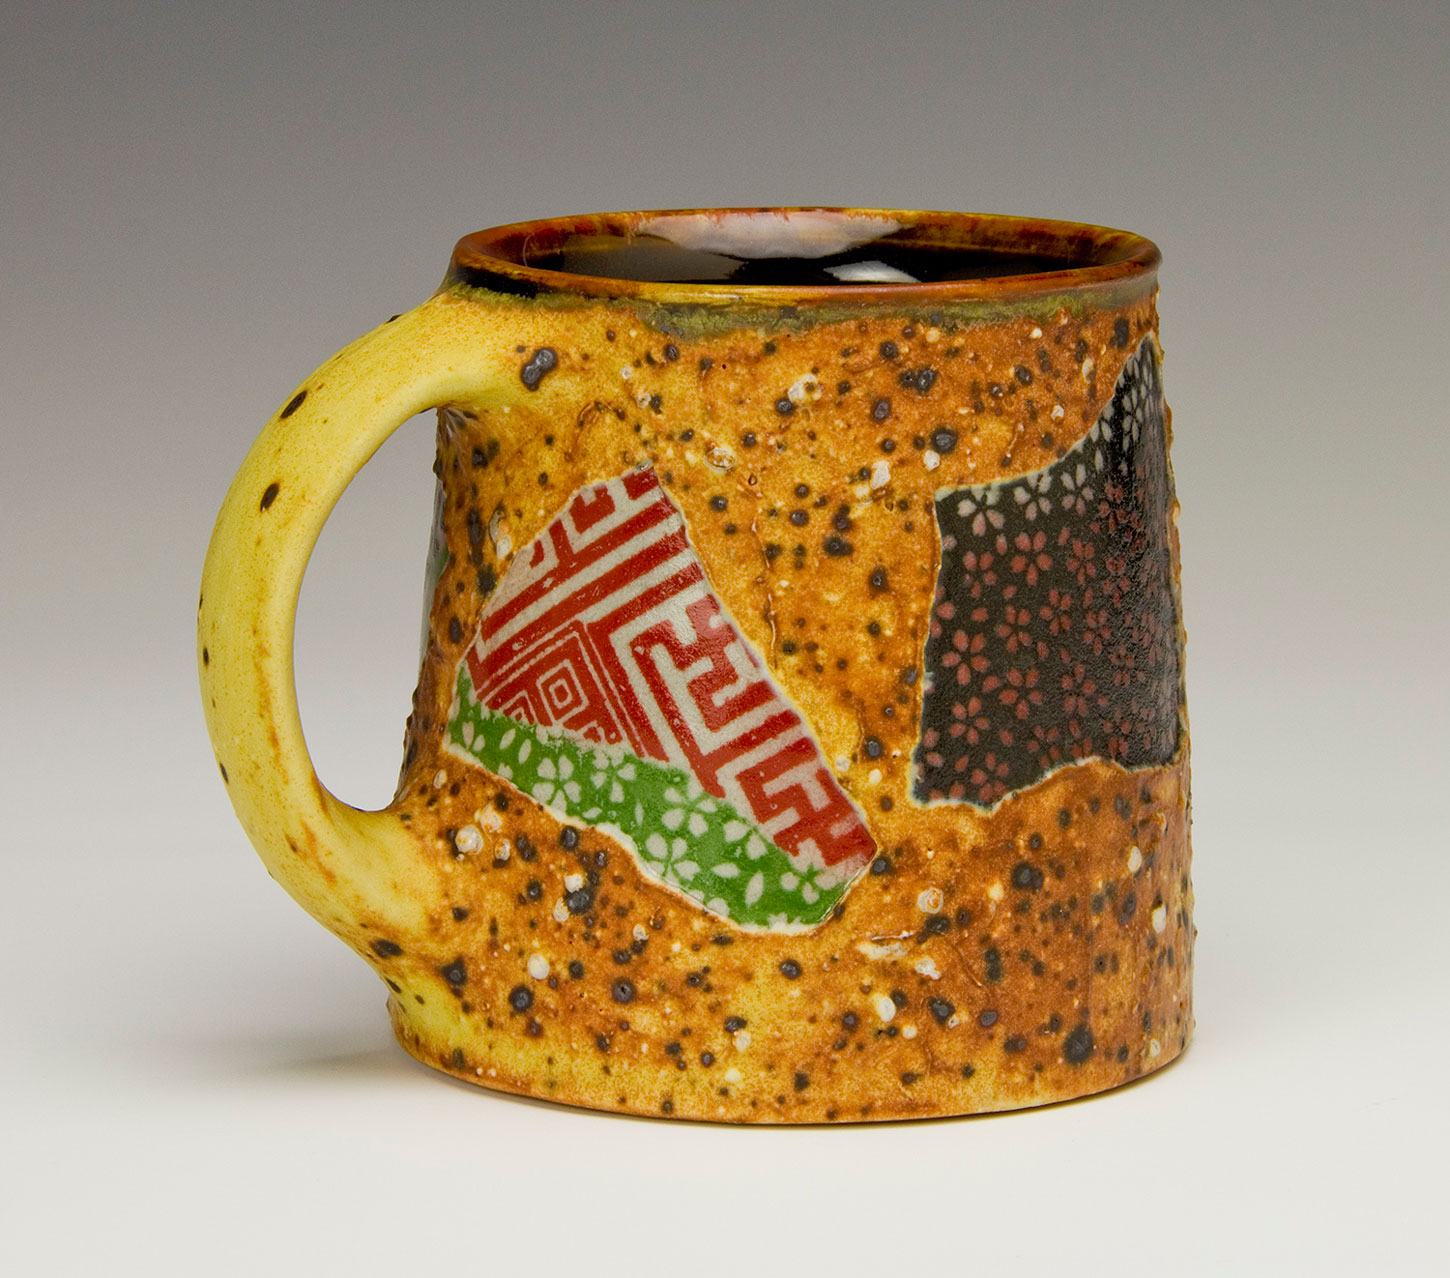 Shard-Decoration-Wild-Clay-Mug-Bruce-Gholson.jpg